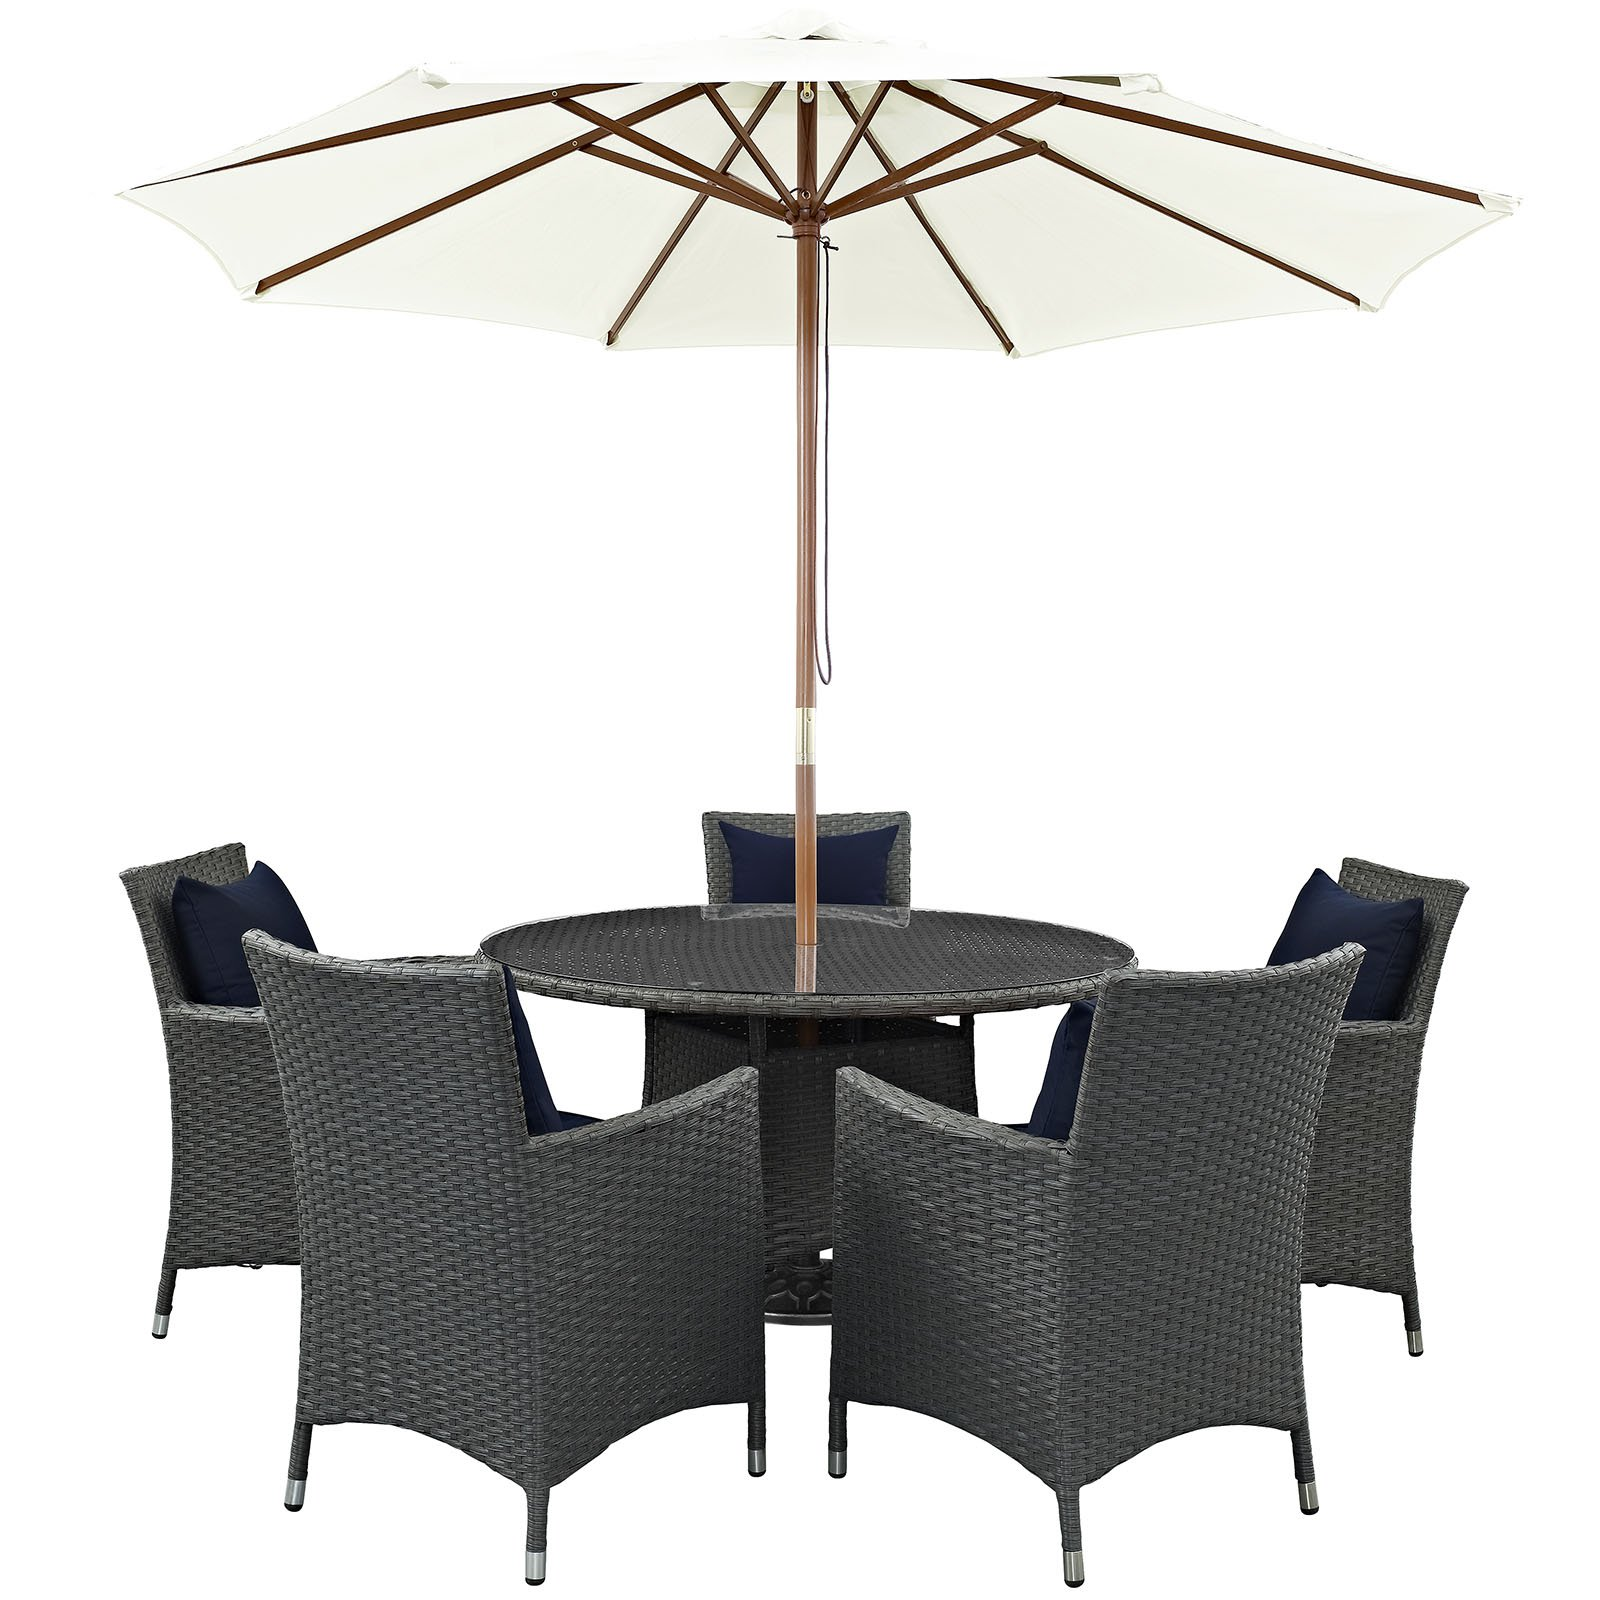 Modway Sojourn 7 Piece Outdoor Patio Sunbrella Dining Set, Multiple Colors